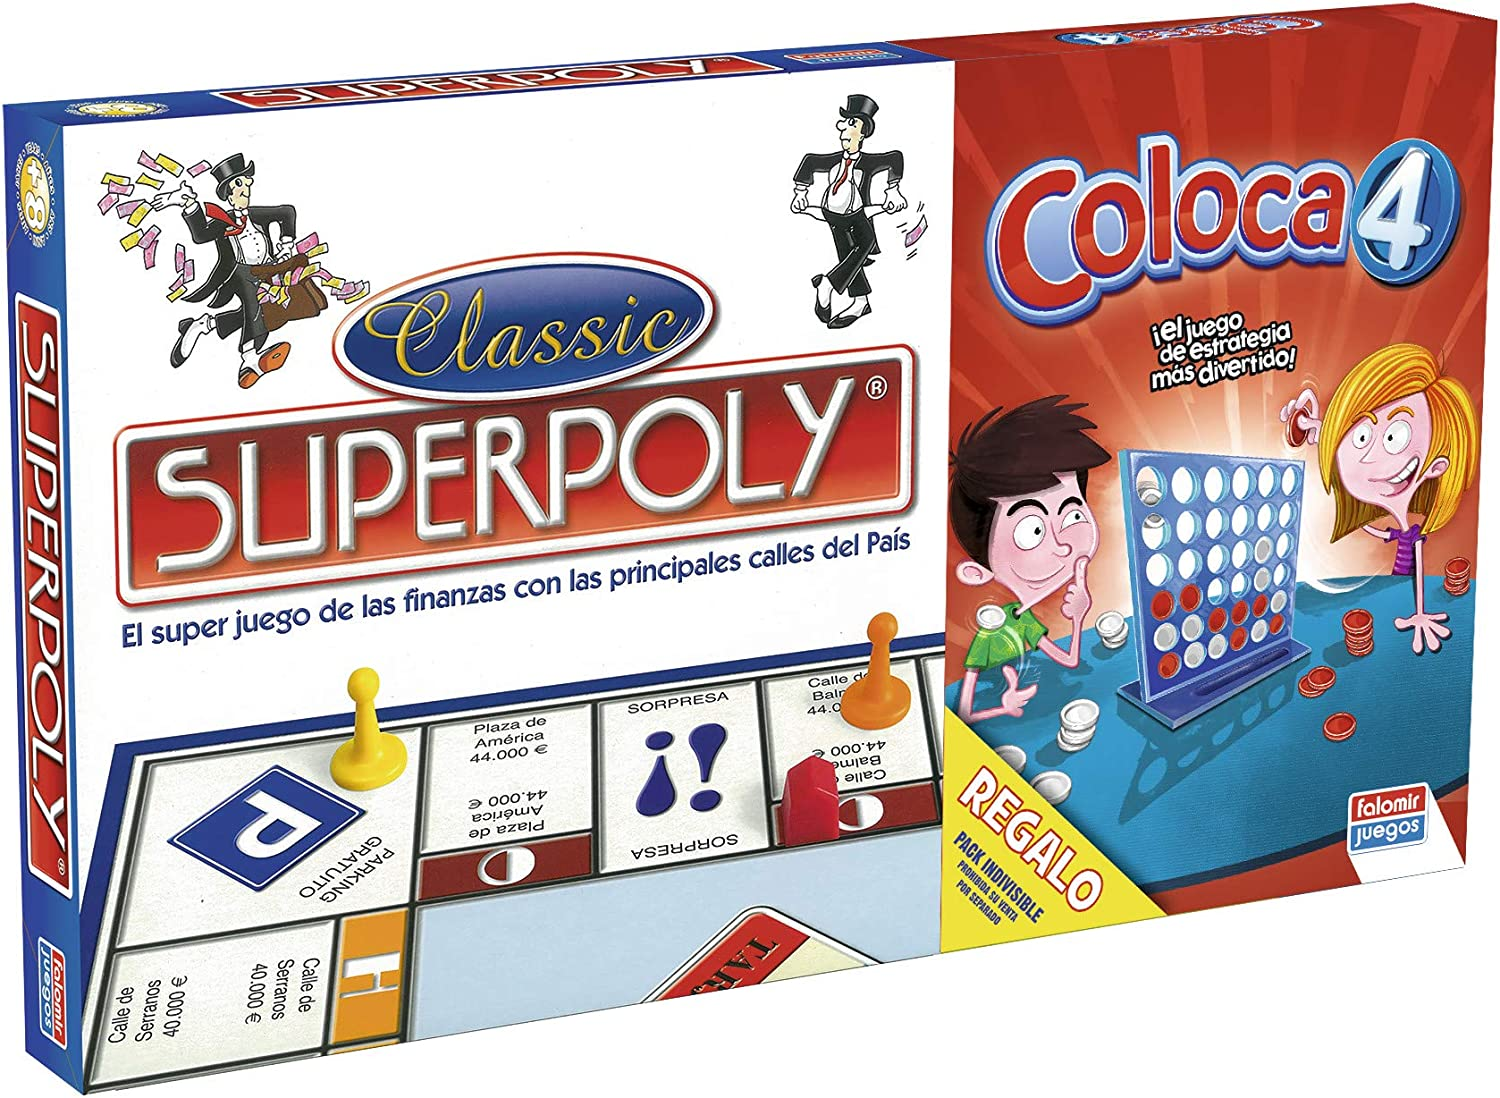 /SuperPoly Falomir 646385/Double Game/ Place 4